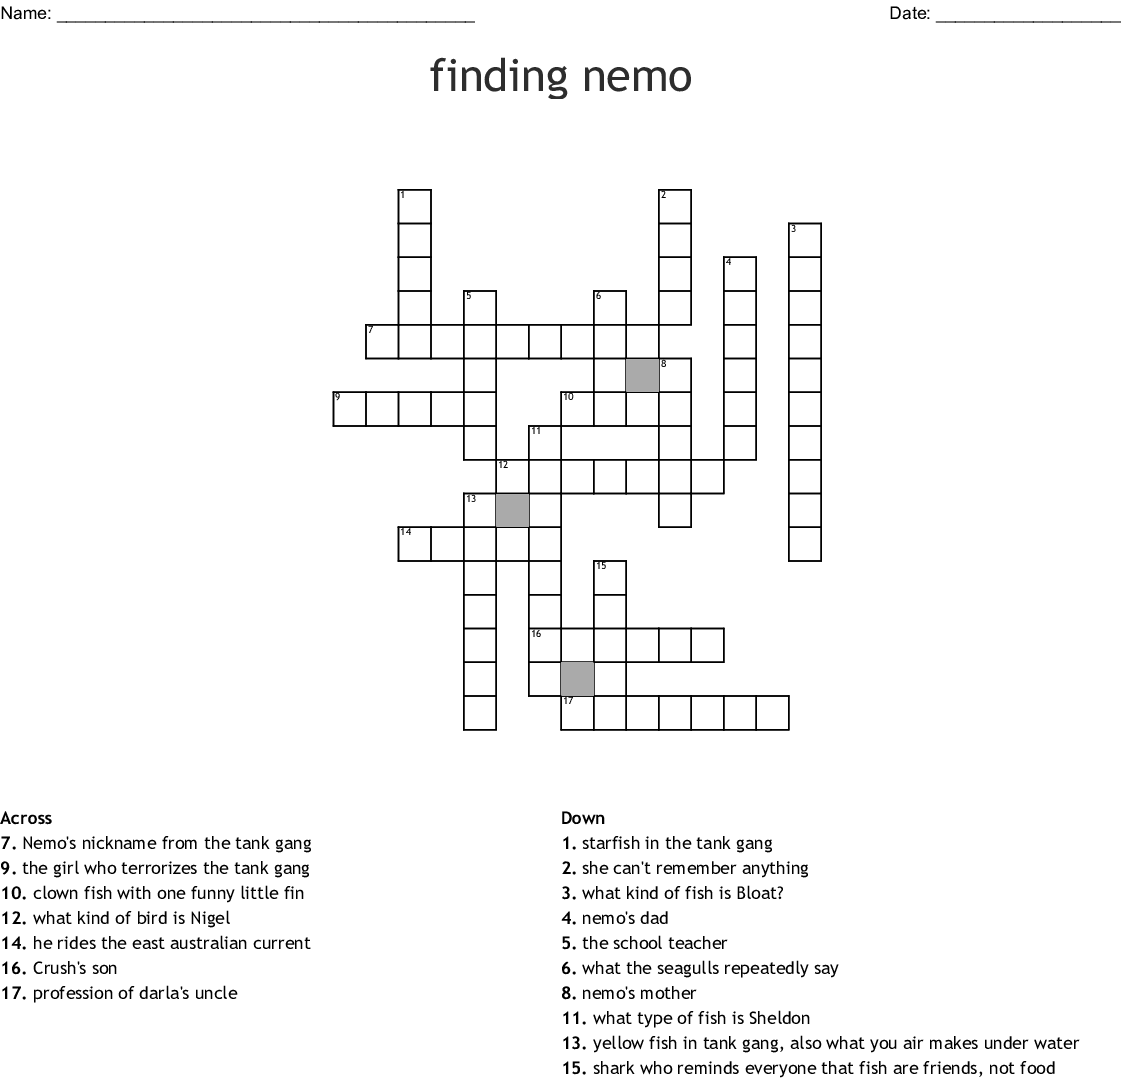 Finding Nemo Word Search